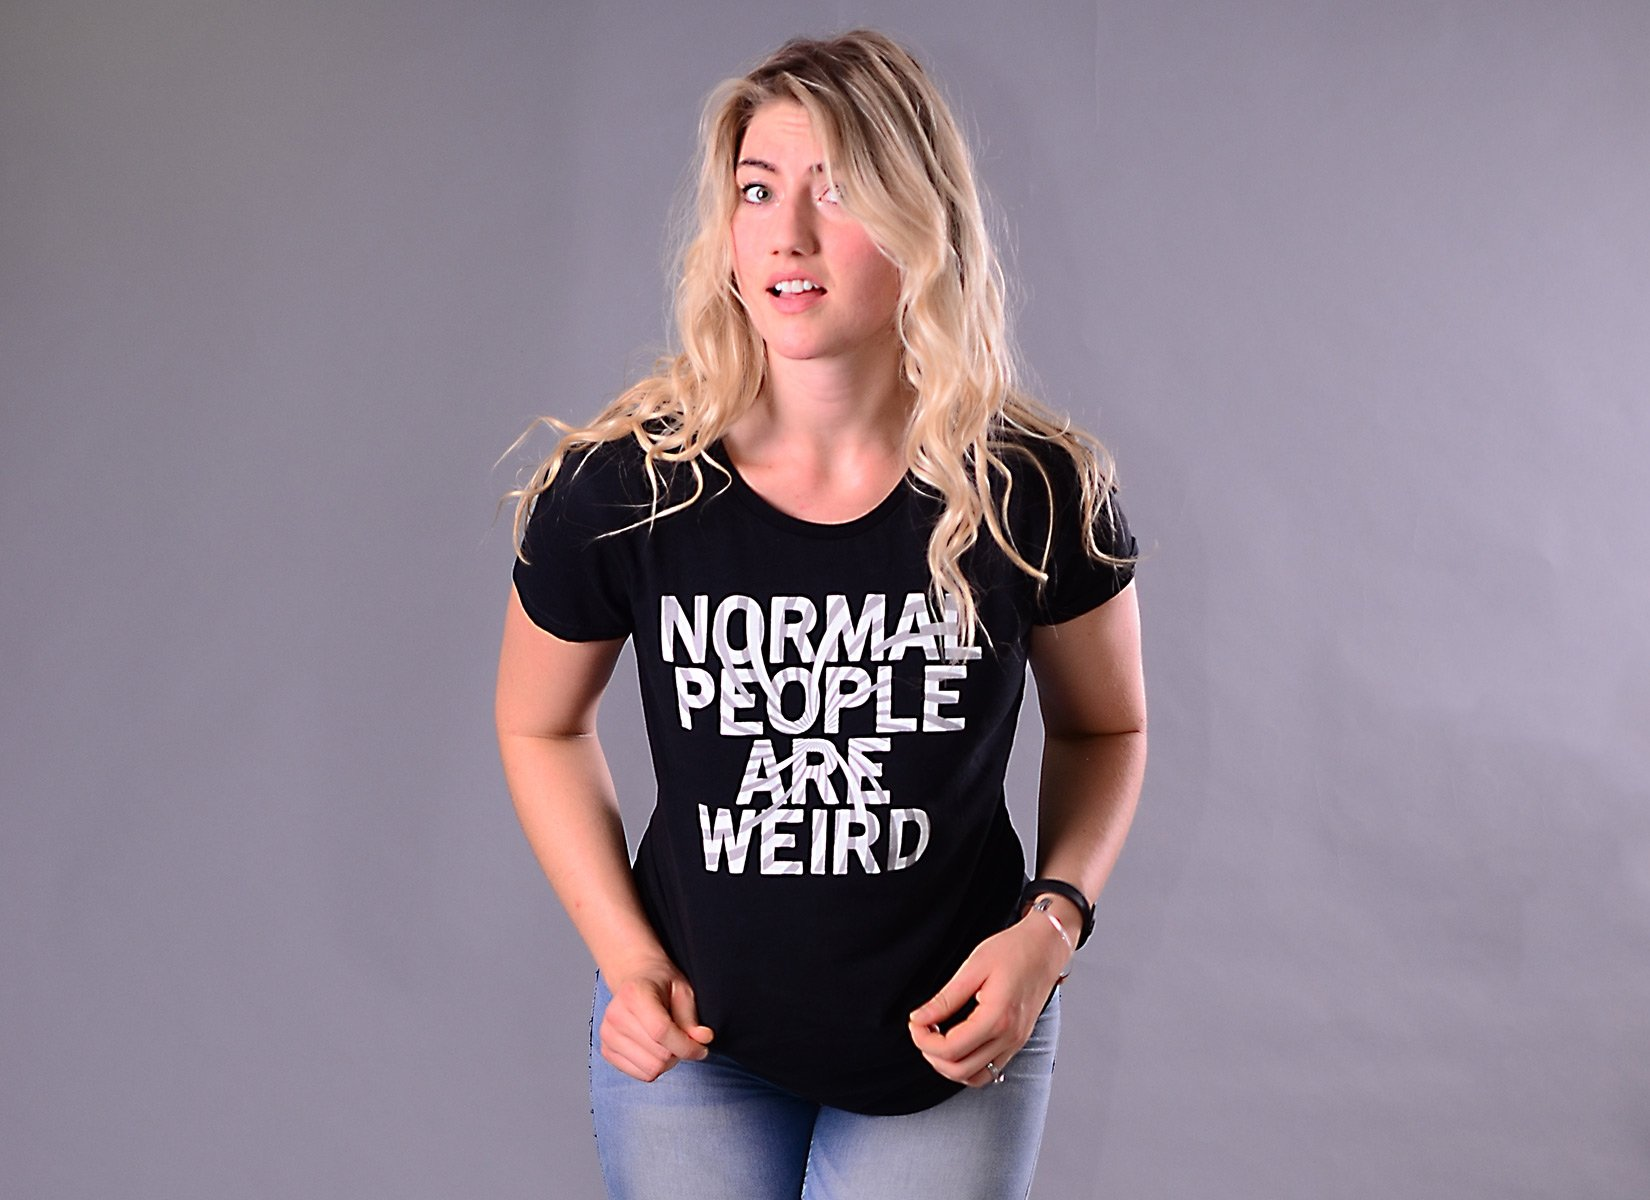 Normal People Are Weird on Womens T-Shirt